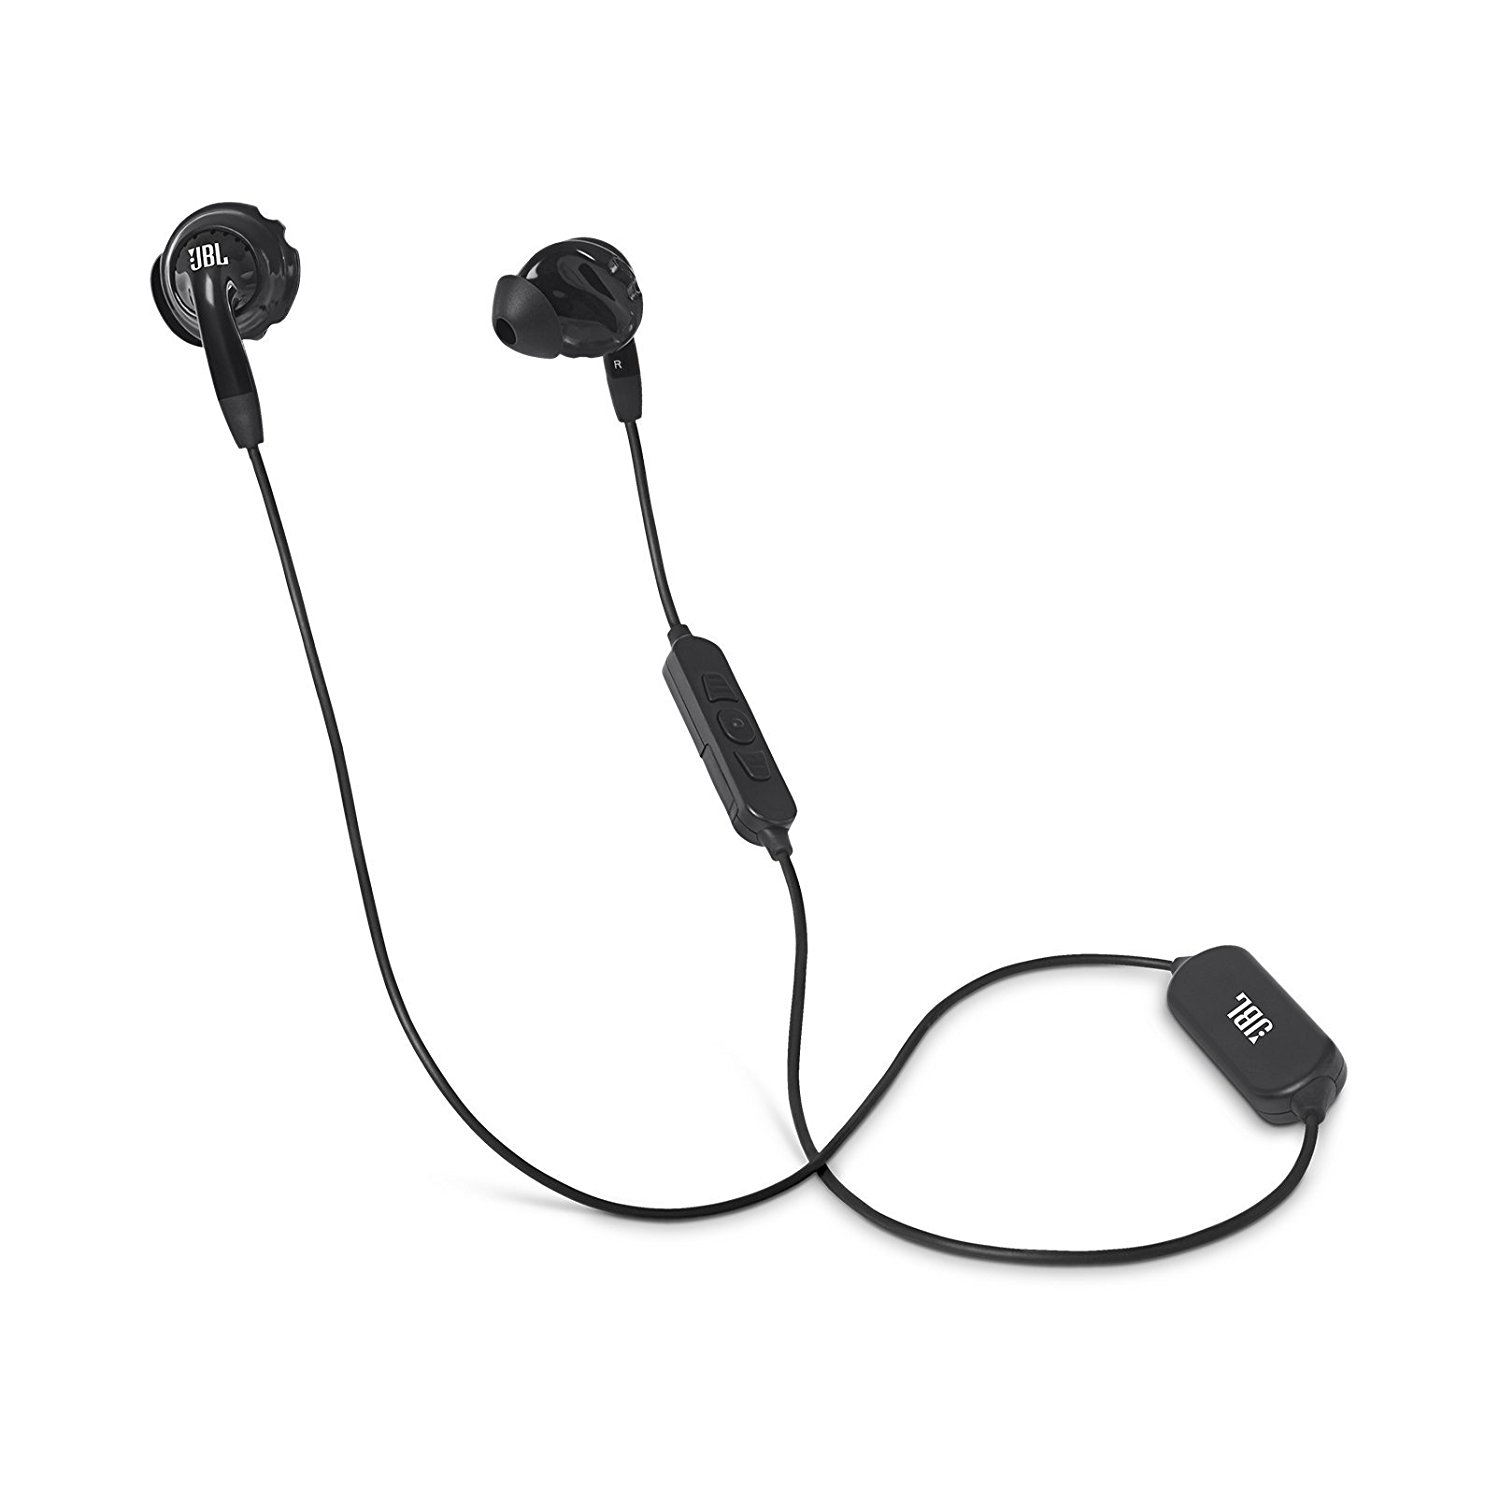 Jbl In Ear Wireless Sport Headphones, Three-Button Remote Control